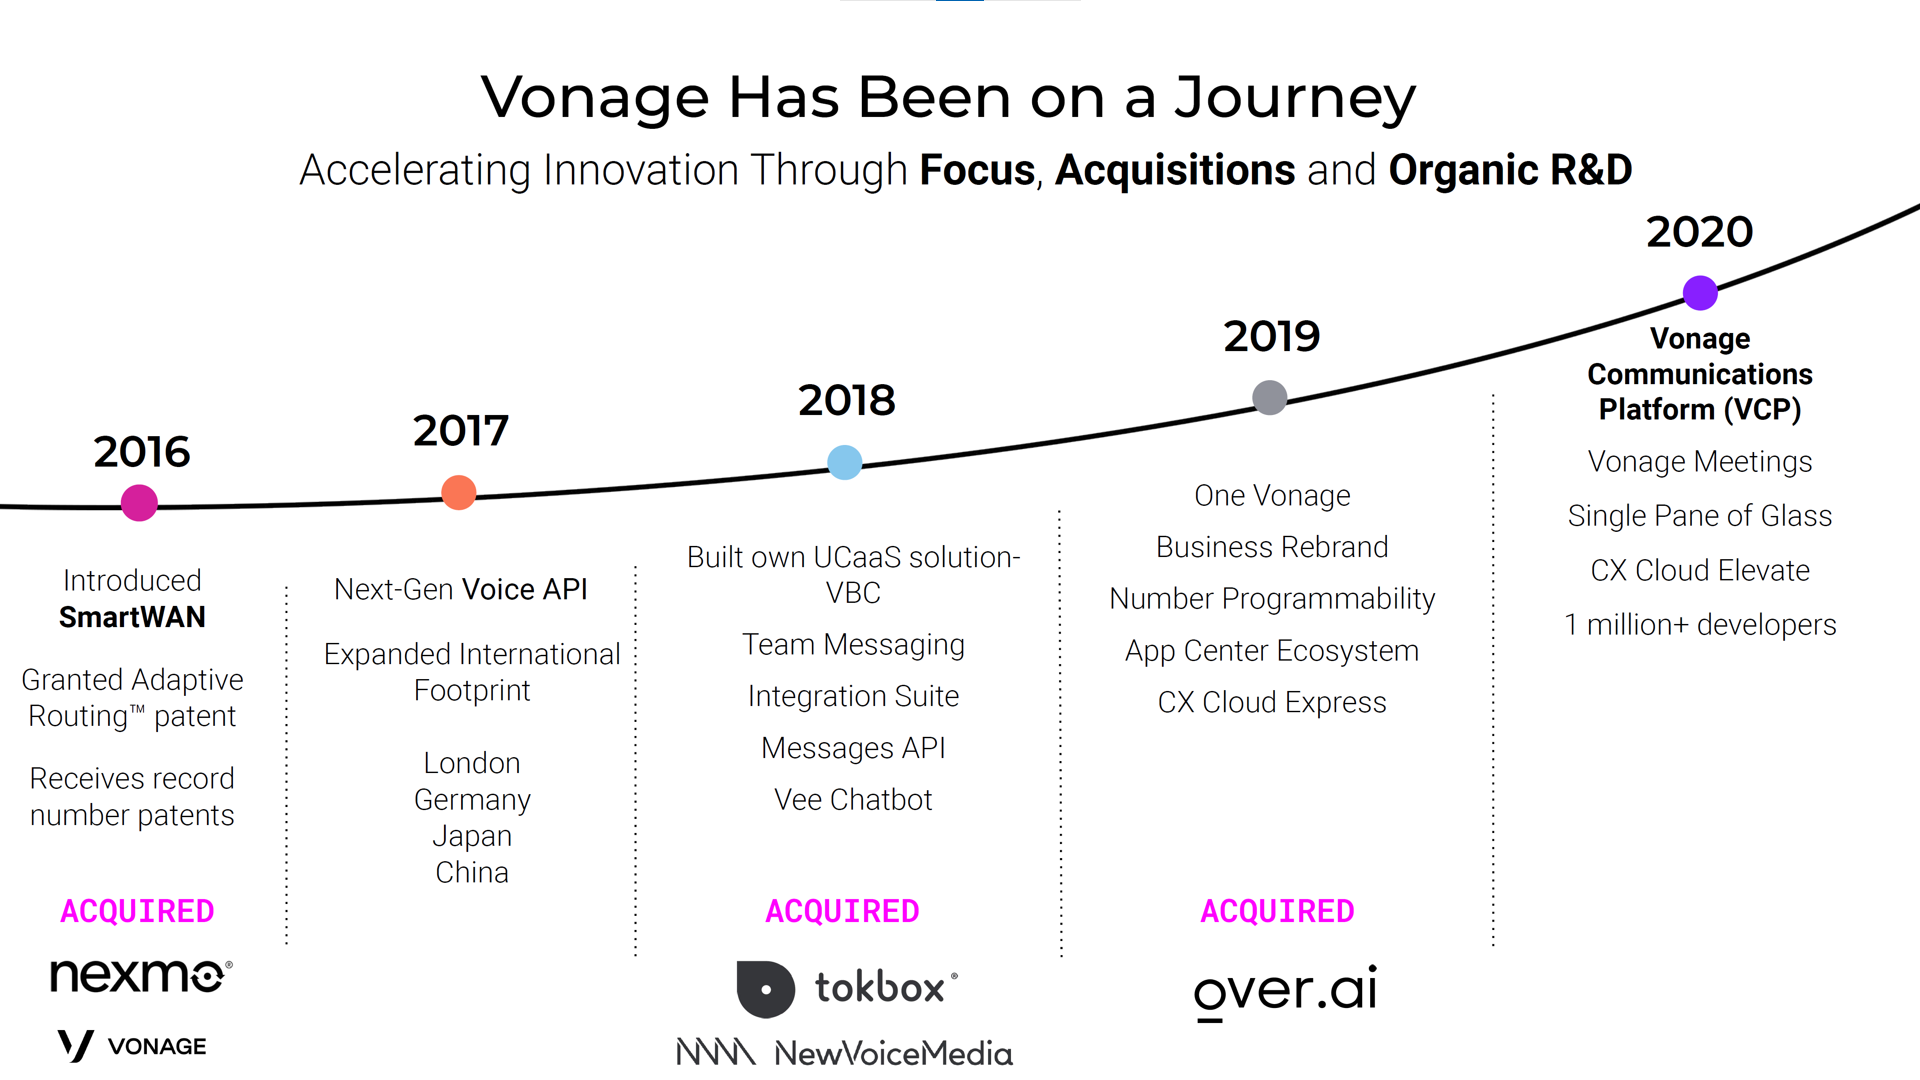 An image depicting Vonage's journey in the last five years